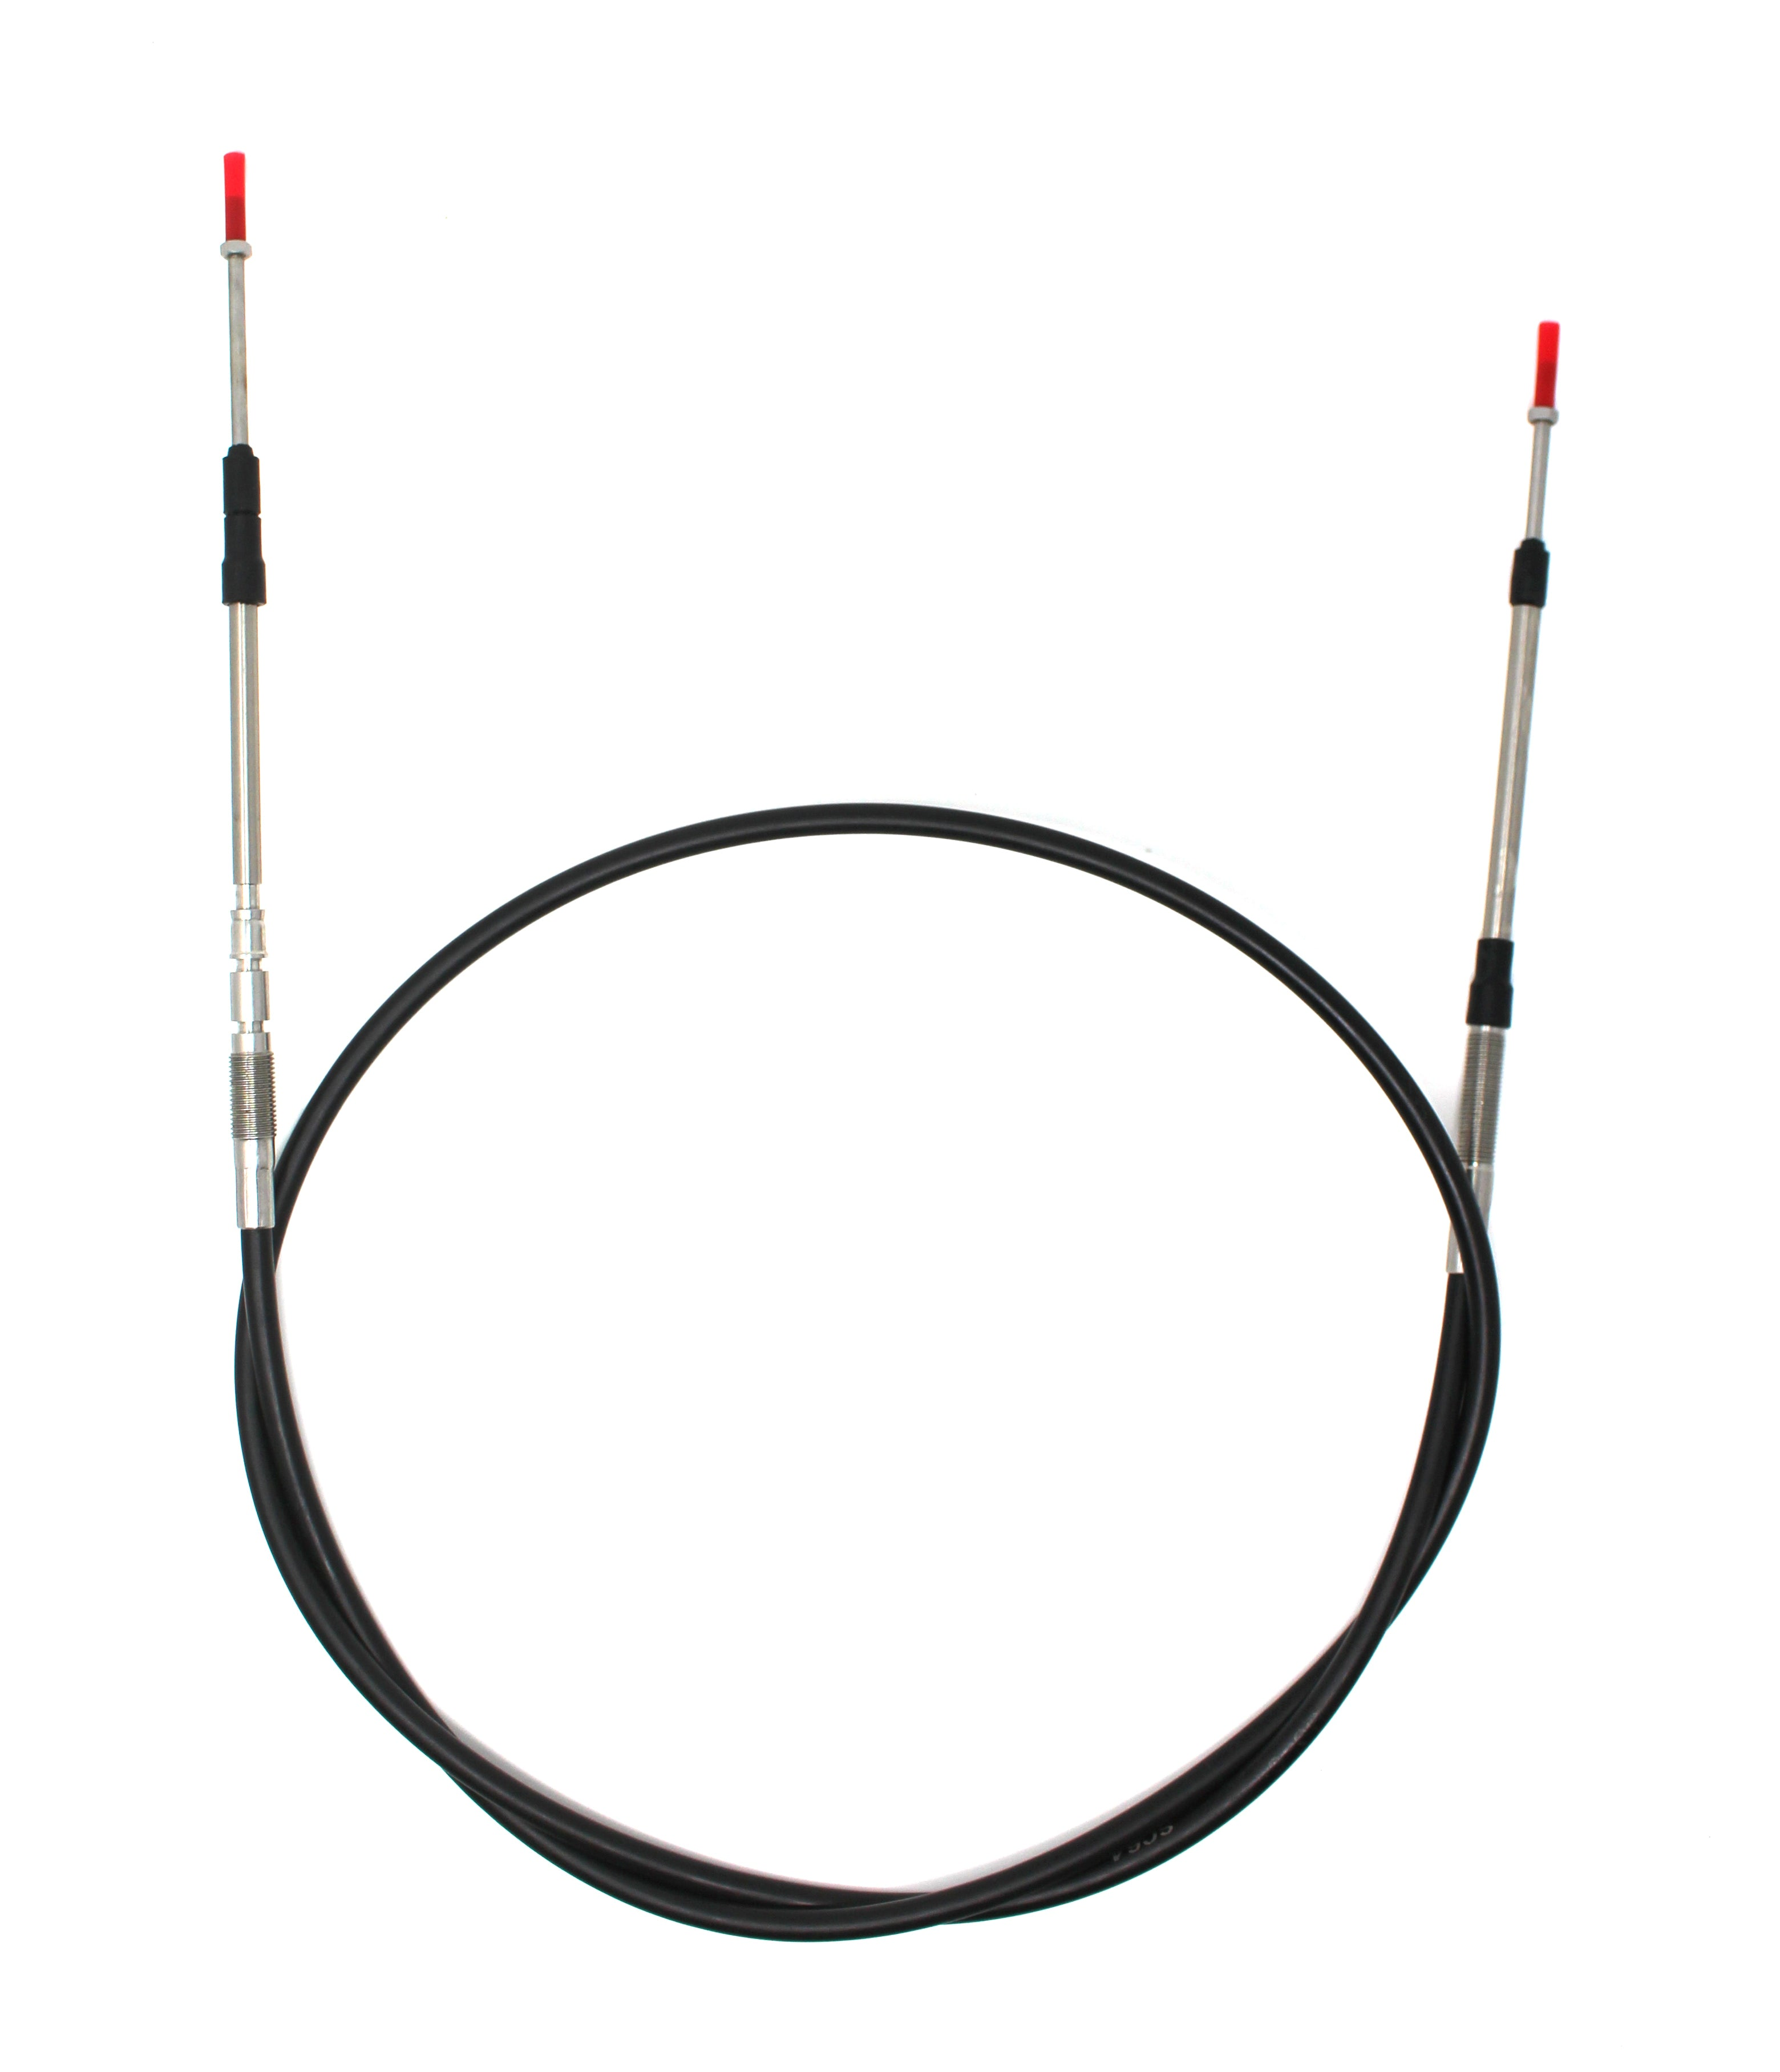 Aftermarket Steering Cable Replacement for Seadoo 1995